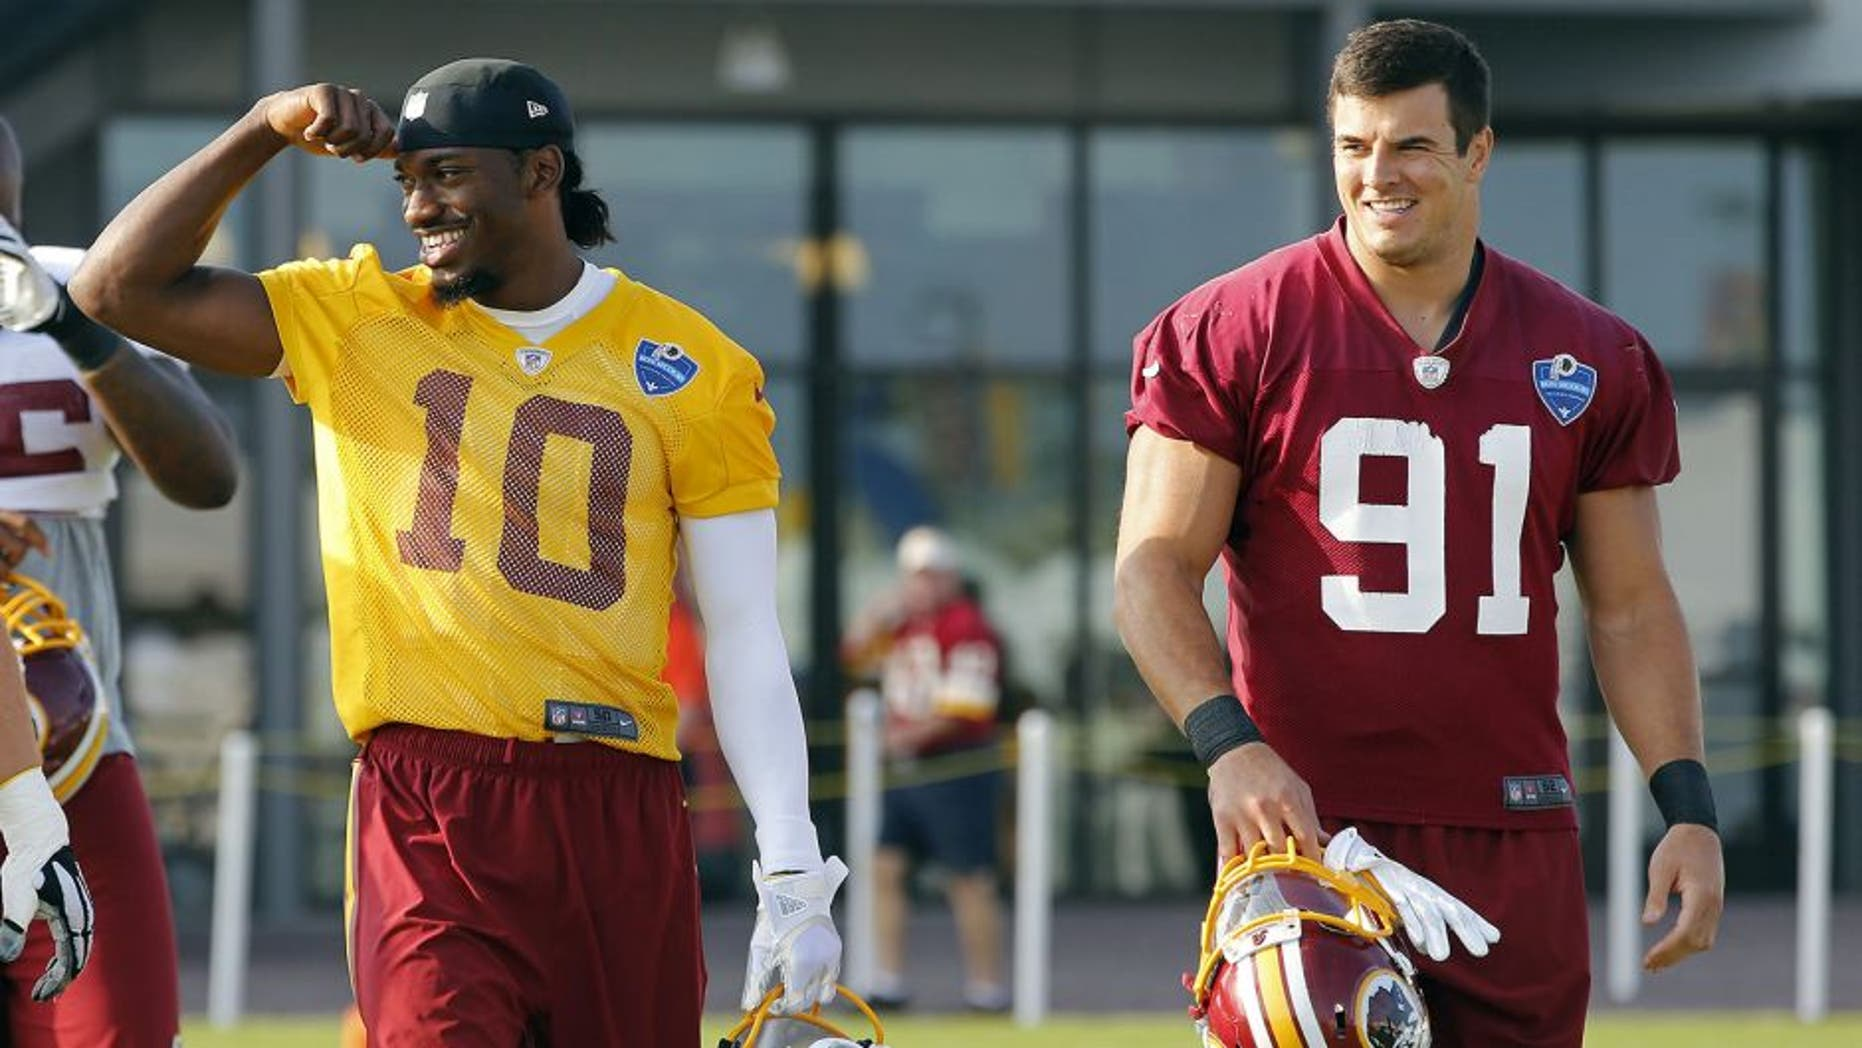 Aug 6, 2014; Richmond, VA, USA; Washington Redskins quarterback Robert Griffin III (10) and outside linebacker Ryan Kerrigan (91) walk onto the field prior to joint practice with the New England Patriots on day twelve at the Bon Secours Washington Redskins Training Center. Mandatory Credit: Geoff Burke-USA TODAY Sports